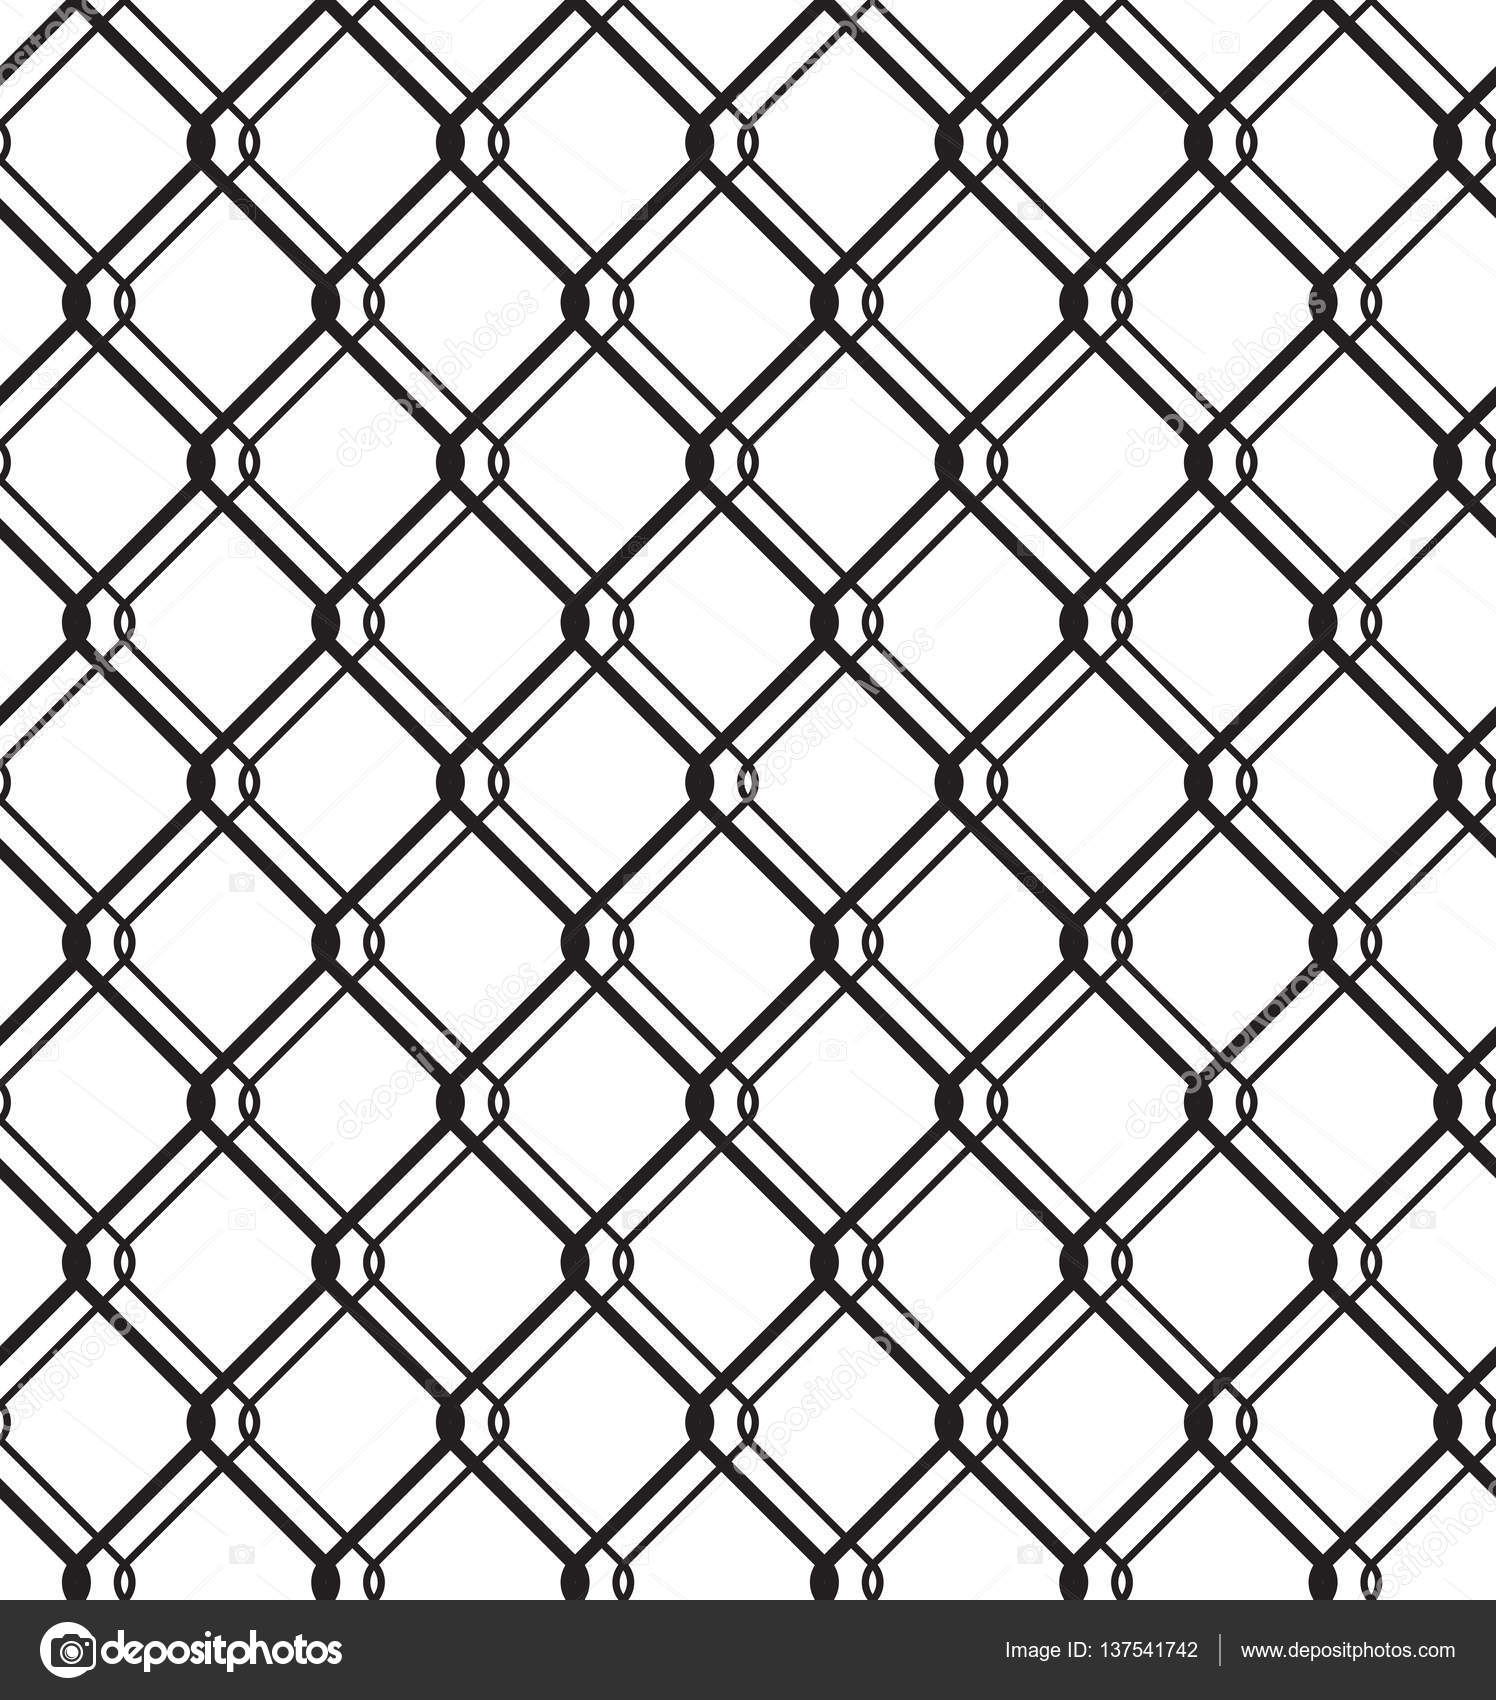 Wired Metallic Fence Seamless Pattern — Stock Vector © creativika ...